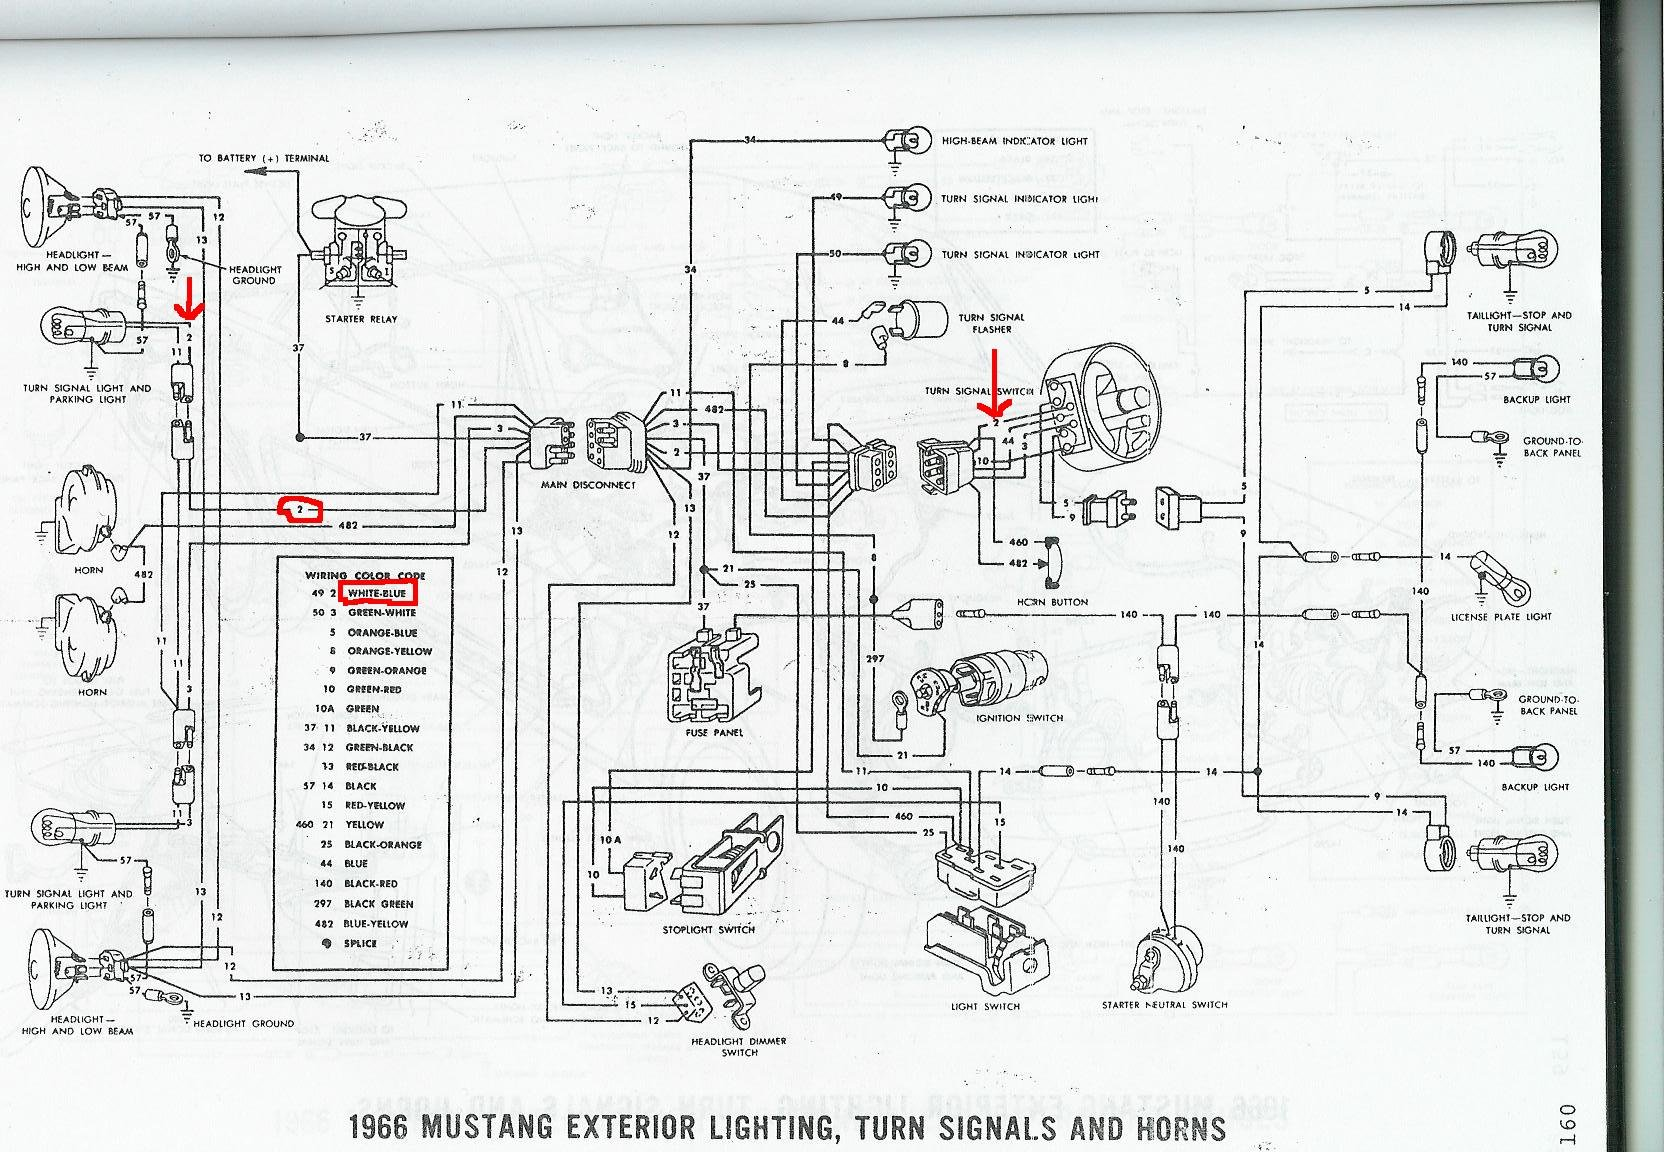 1966 Mustang Park Lights Please Tell Me How They Are Supposed To 2 Lights  One Switch Diagram Parking Lights Wiring Diagram For Ford